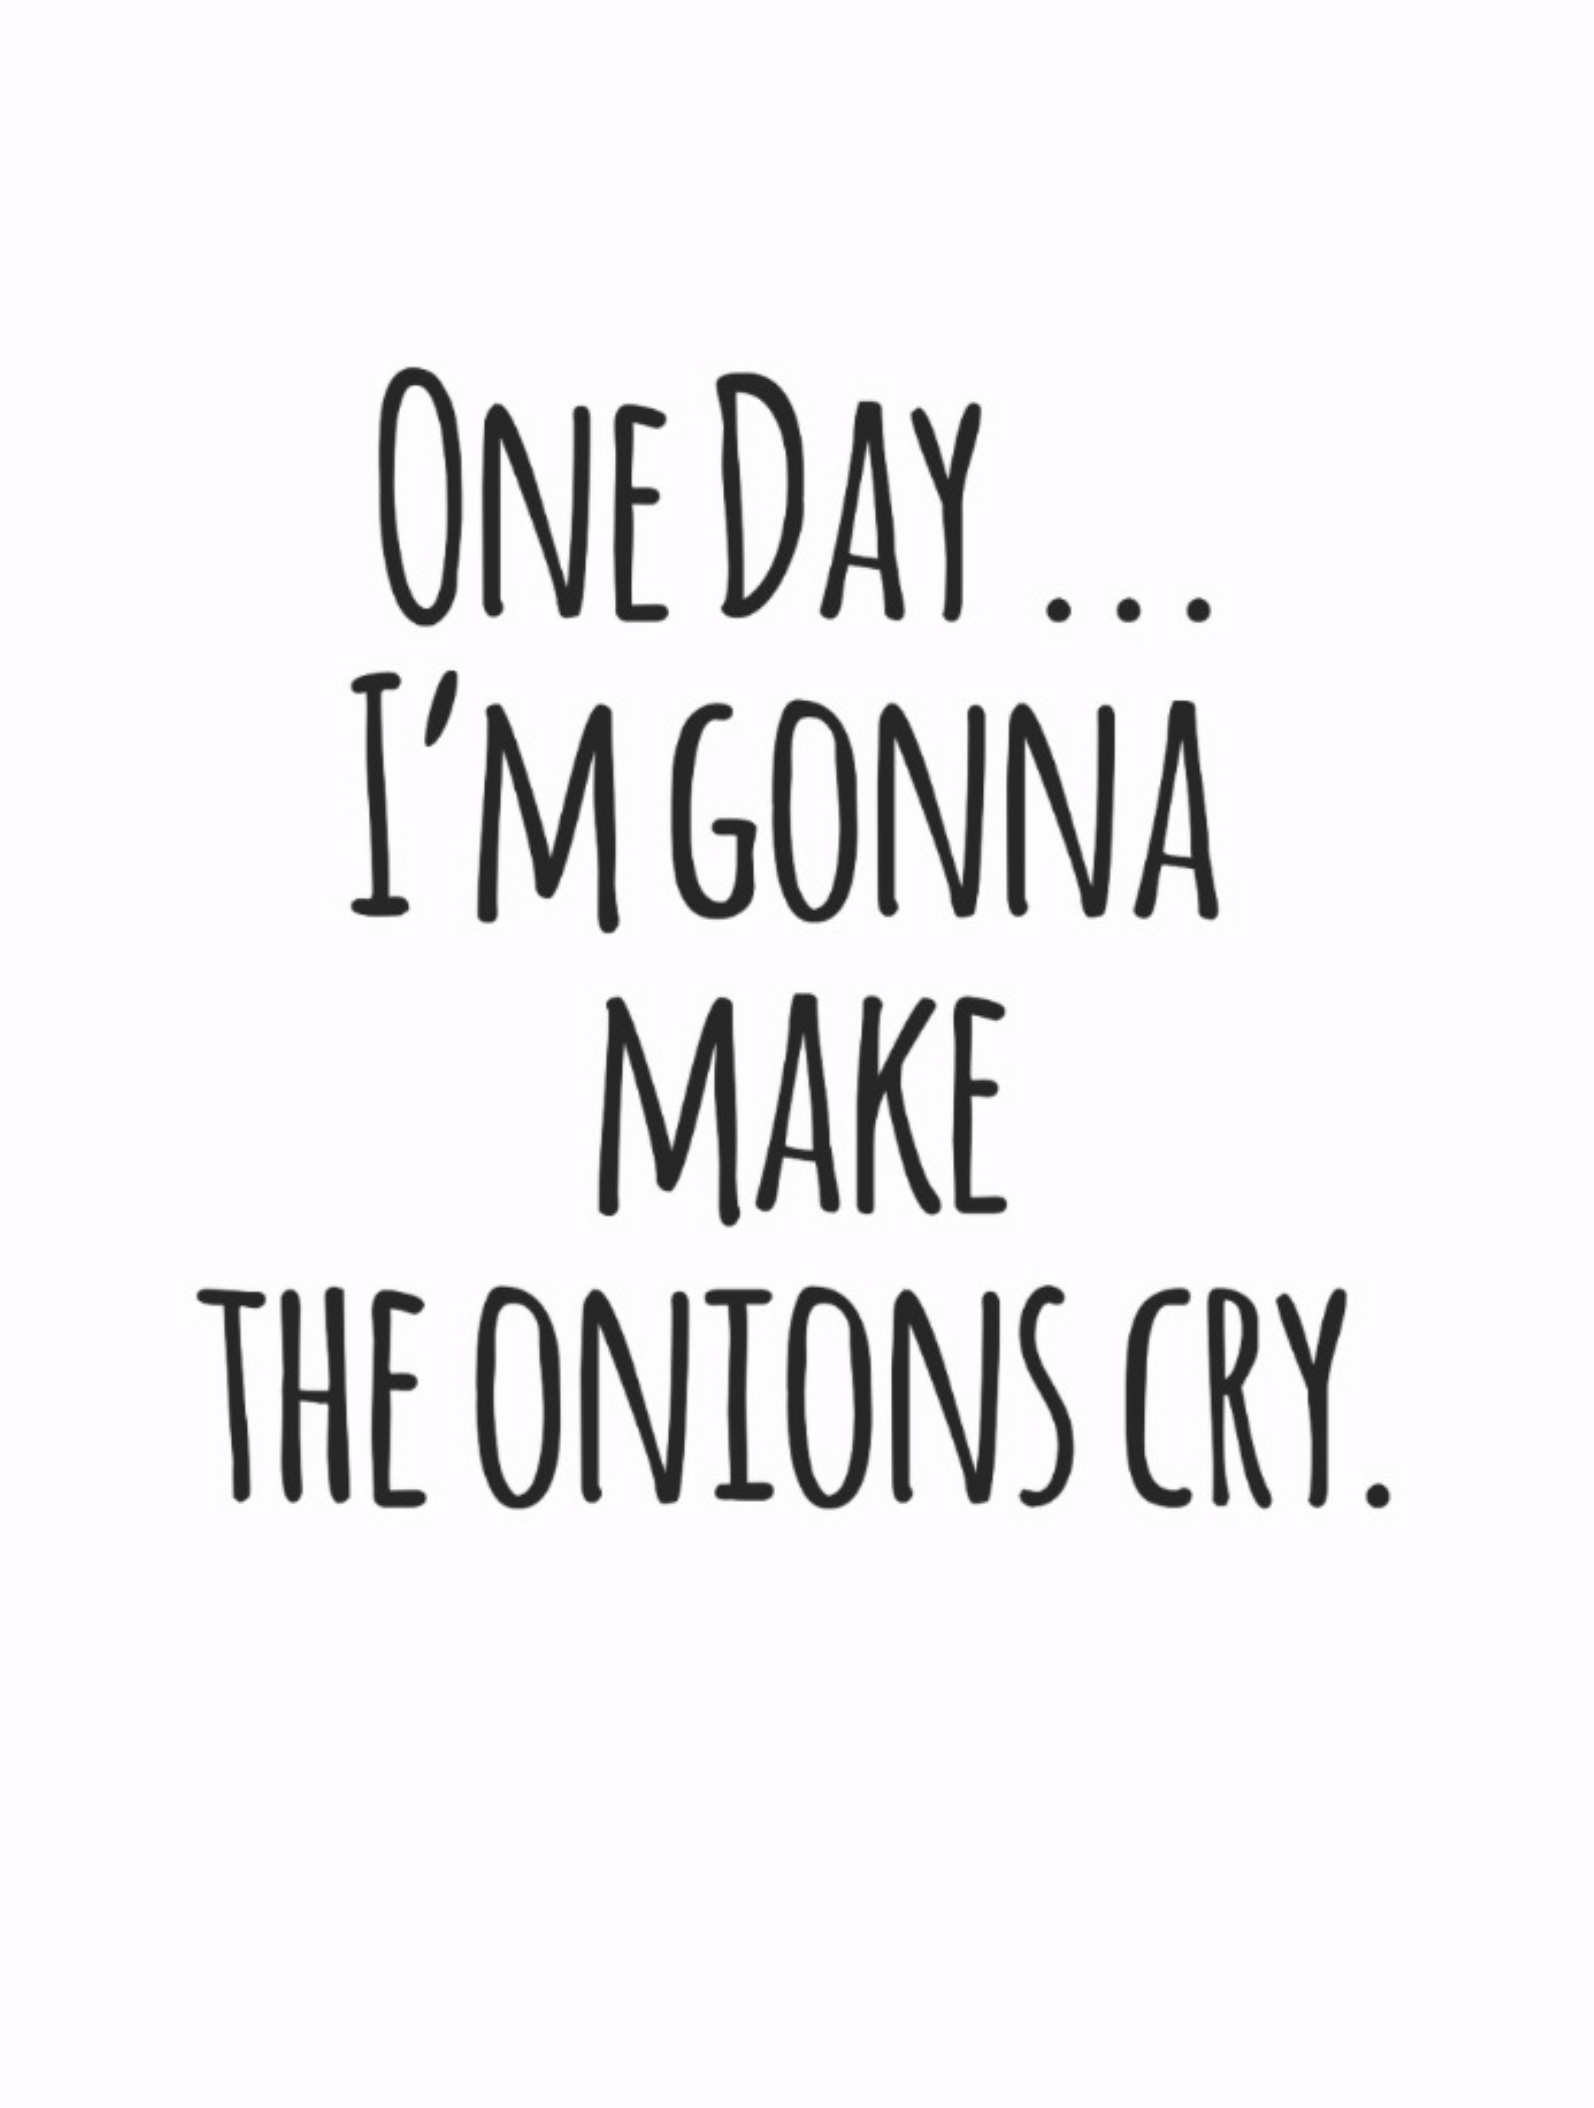 Humoroushits Onions Cry Handwritten Black And White Quote Postcard Funny Health Quotes Quotes White Pretty Quotes